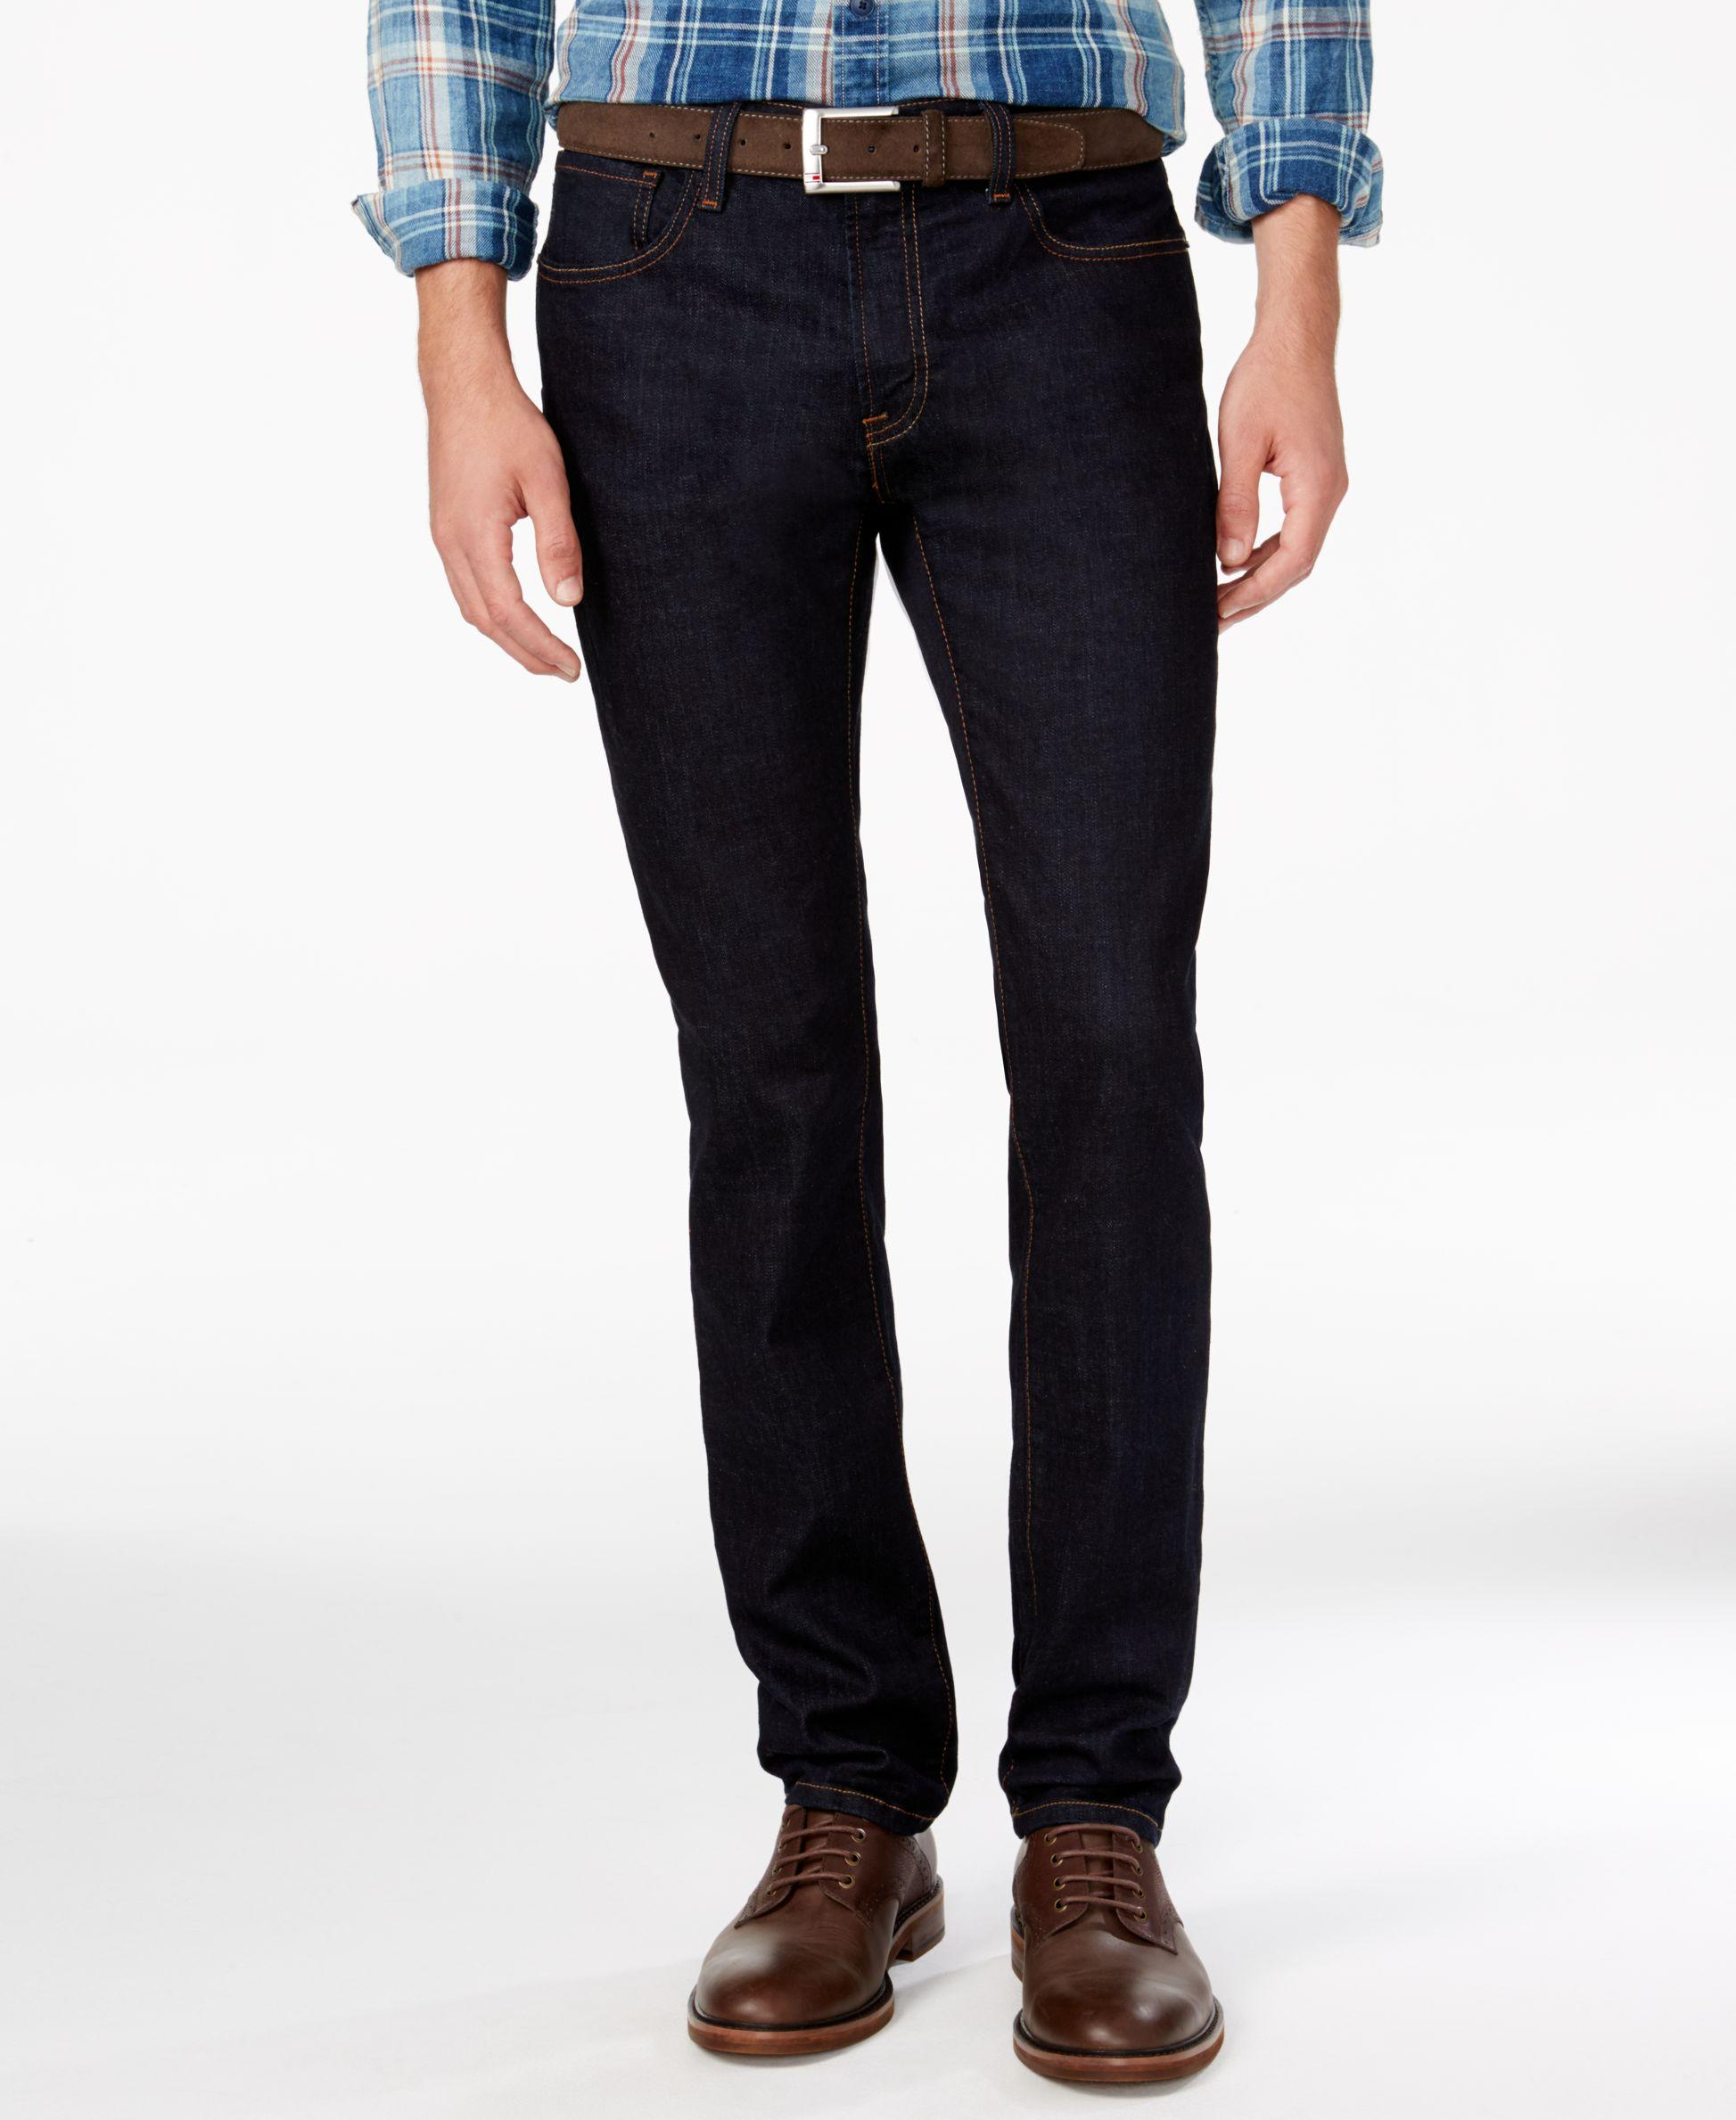 Add some sleek flair to any ensemble with slim jeans for men. A great pair of jeans is a well-loved option for any casual style. Slim fit jeans are an excellent way to make jeans dressy, especially when worn with a bulky top. Find stylish jeans in slim fit styles from INC International Concepts, Denim & Supply Ralph Lauren and many more.